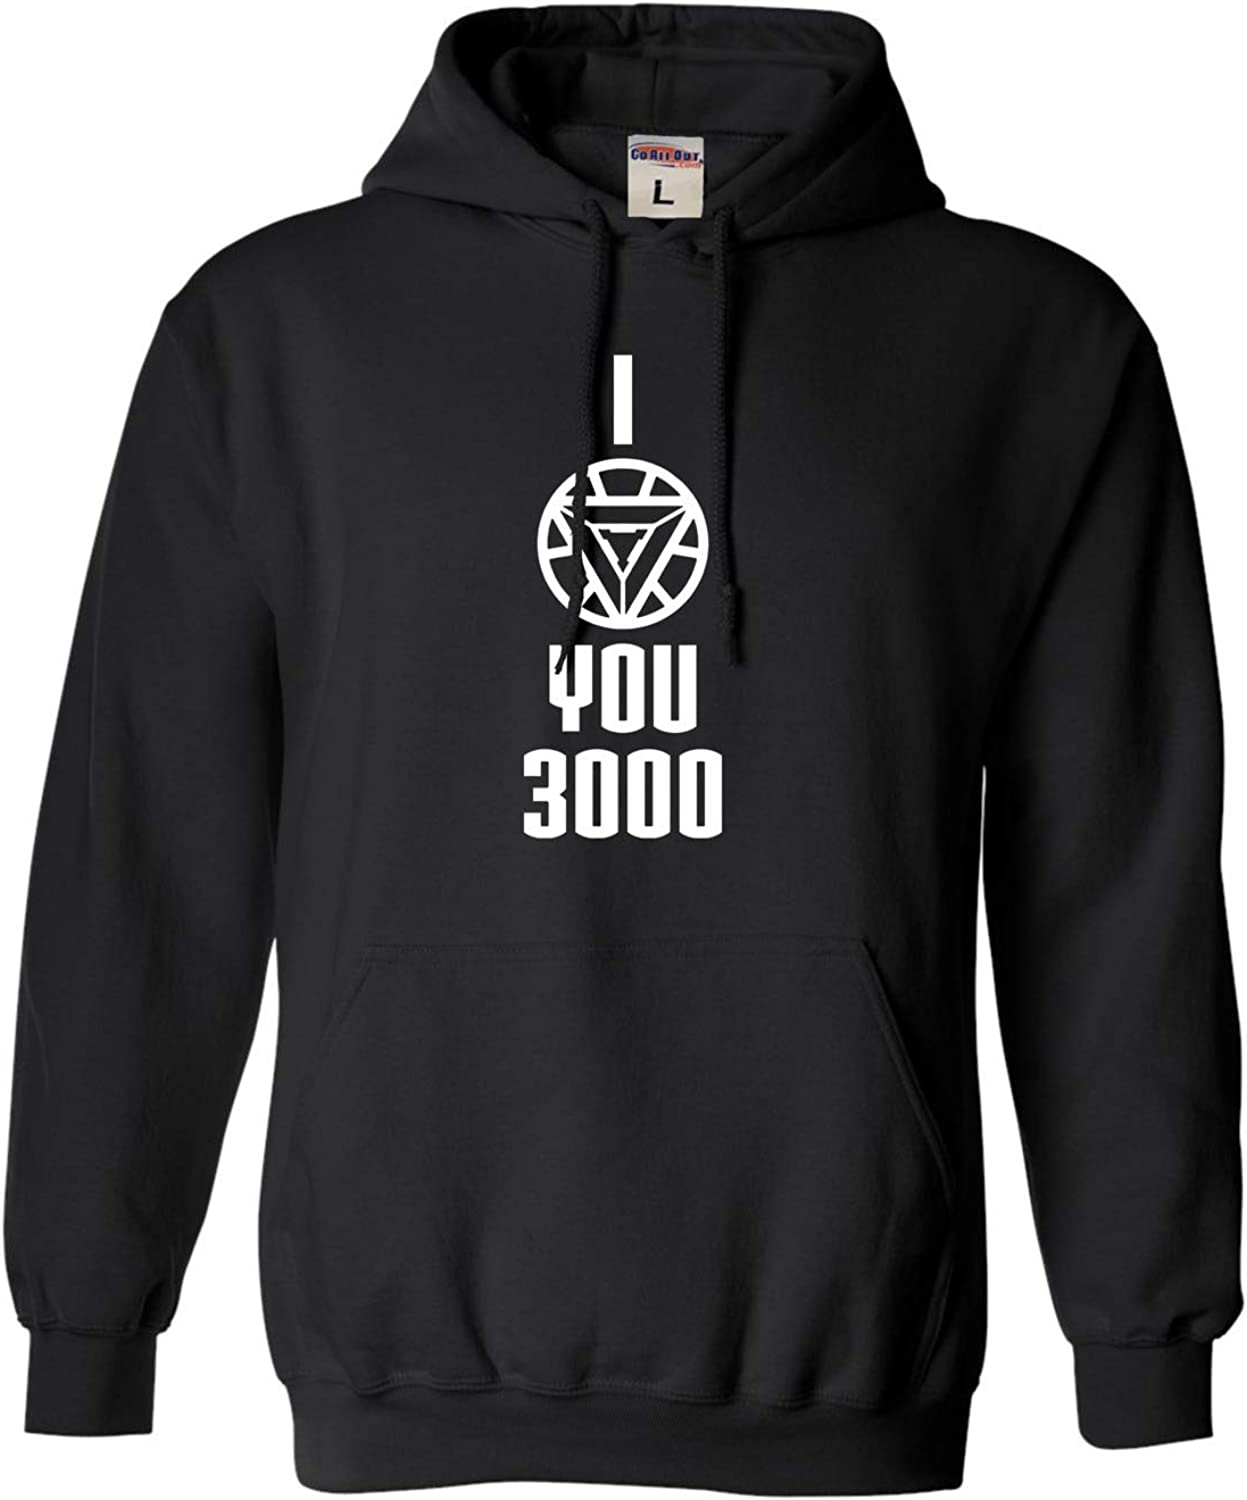 Go All Out Adult I 2021 Max 46% OFF You 3000 Love Sweatshirt Hoodie